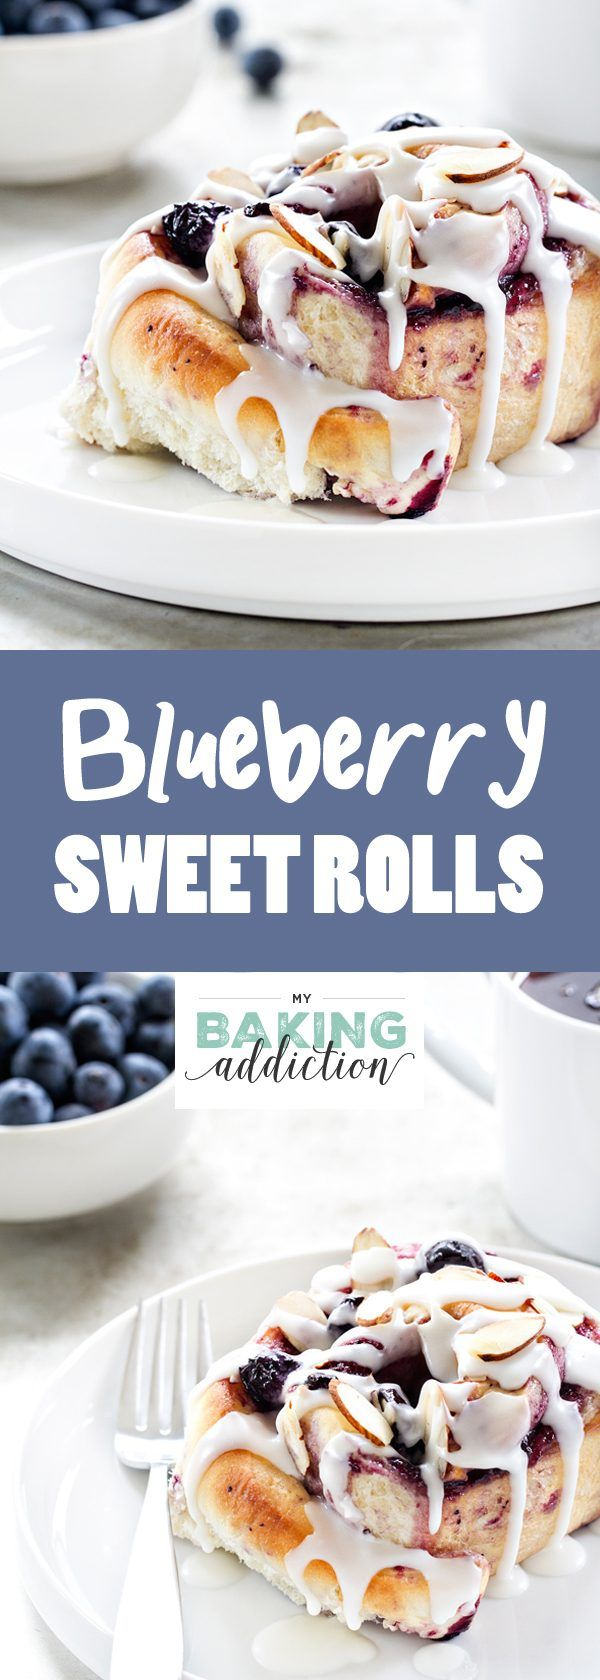 Blueberry Sweet  Rolls a like cinnamon rolls, but filled with sweet blueberry goodness. So perfect for brunch! #fisherunshelled #ad